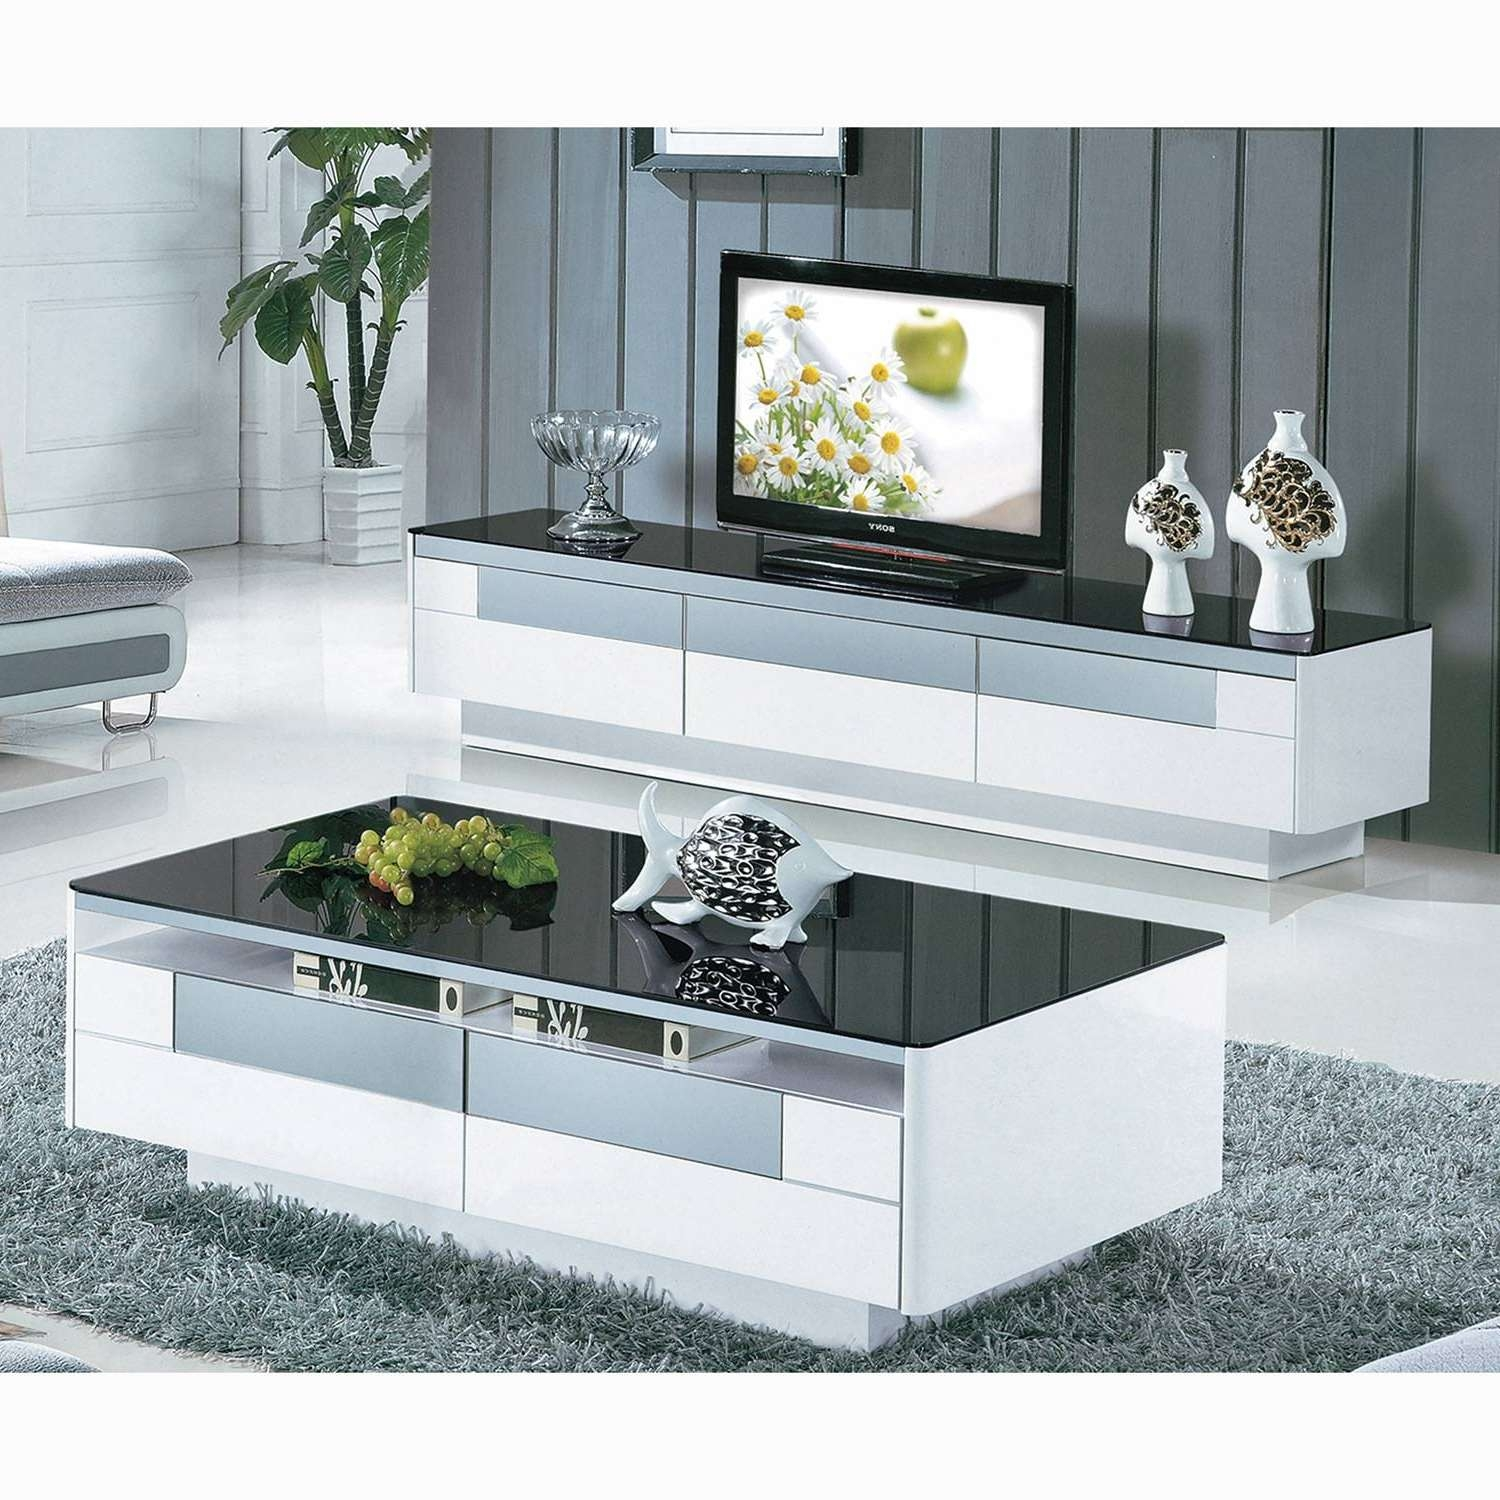 2017 Tv Stand Coffee Table Sets Throughout Coffee Tables : Grey Tv Stand And Coffee Table Stands White High (View 1 of 20)